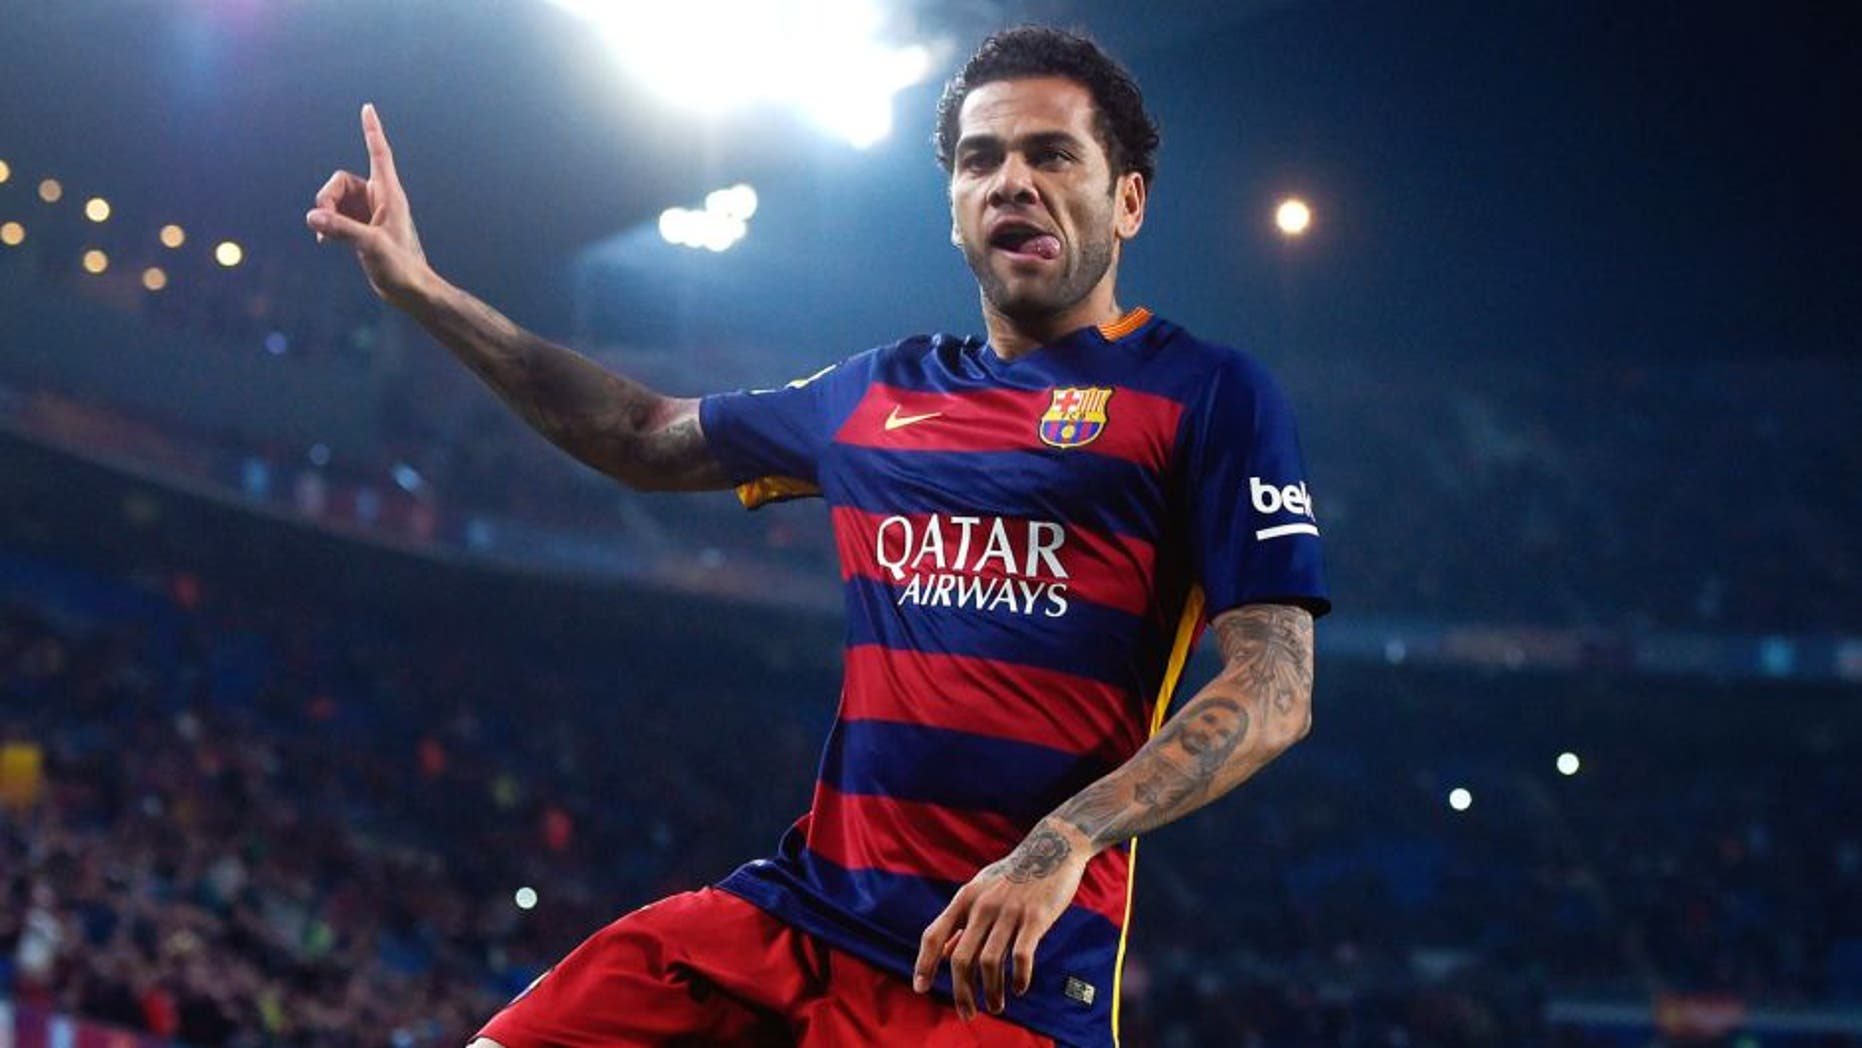 BARCELONA, SPAIN - DECEMBER 02: Dani Alves of FC Barcelona celebrates after scoring the opening goal during the Copa del Rey Round of 32 second leg match betwen FC Barcelona and Villanovense on December 2, 2015 in Barcelona, Spain. (Photo by David Ramos/Getty Images)